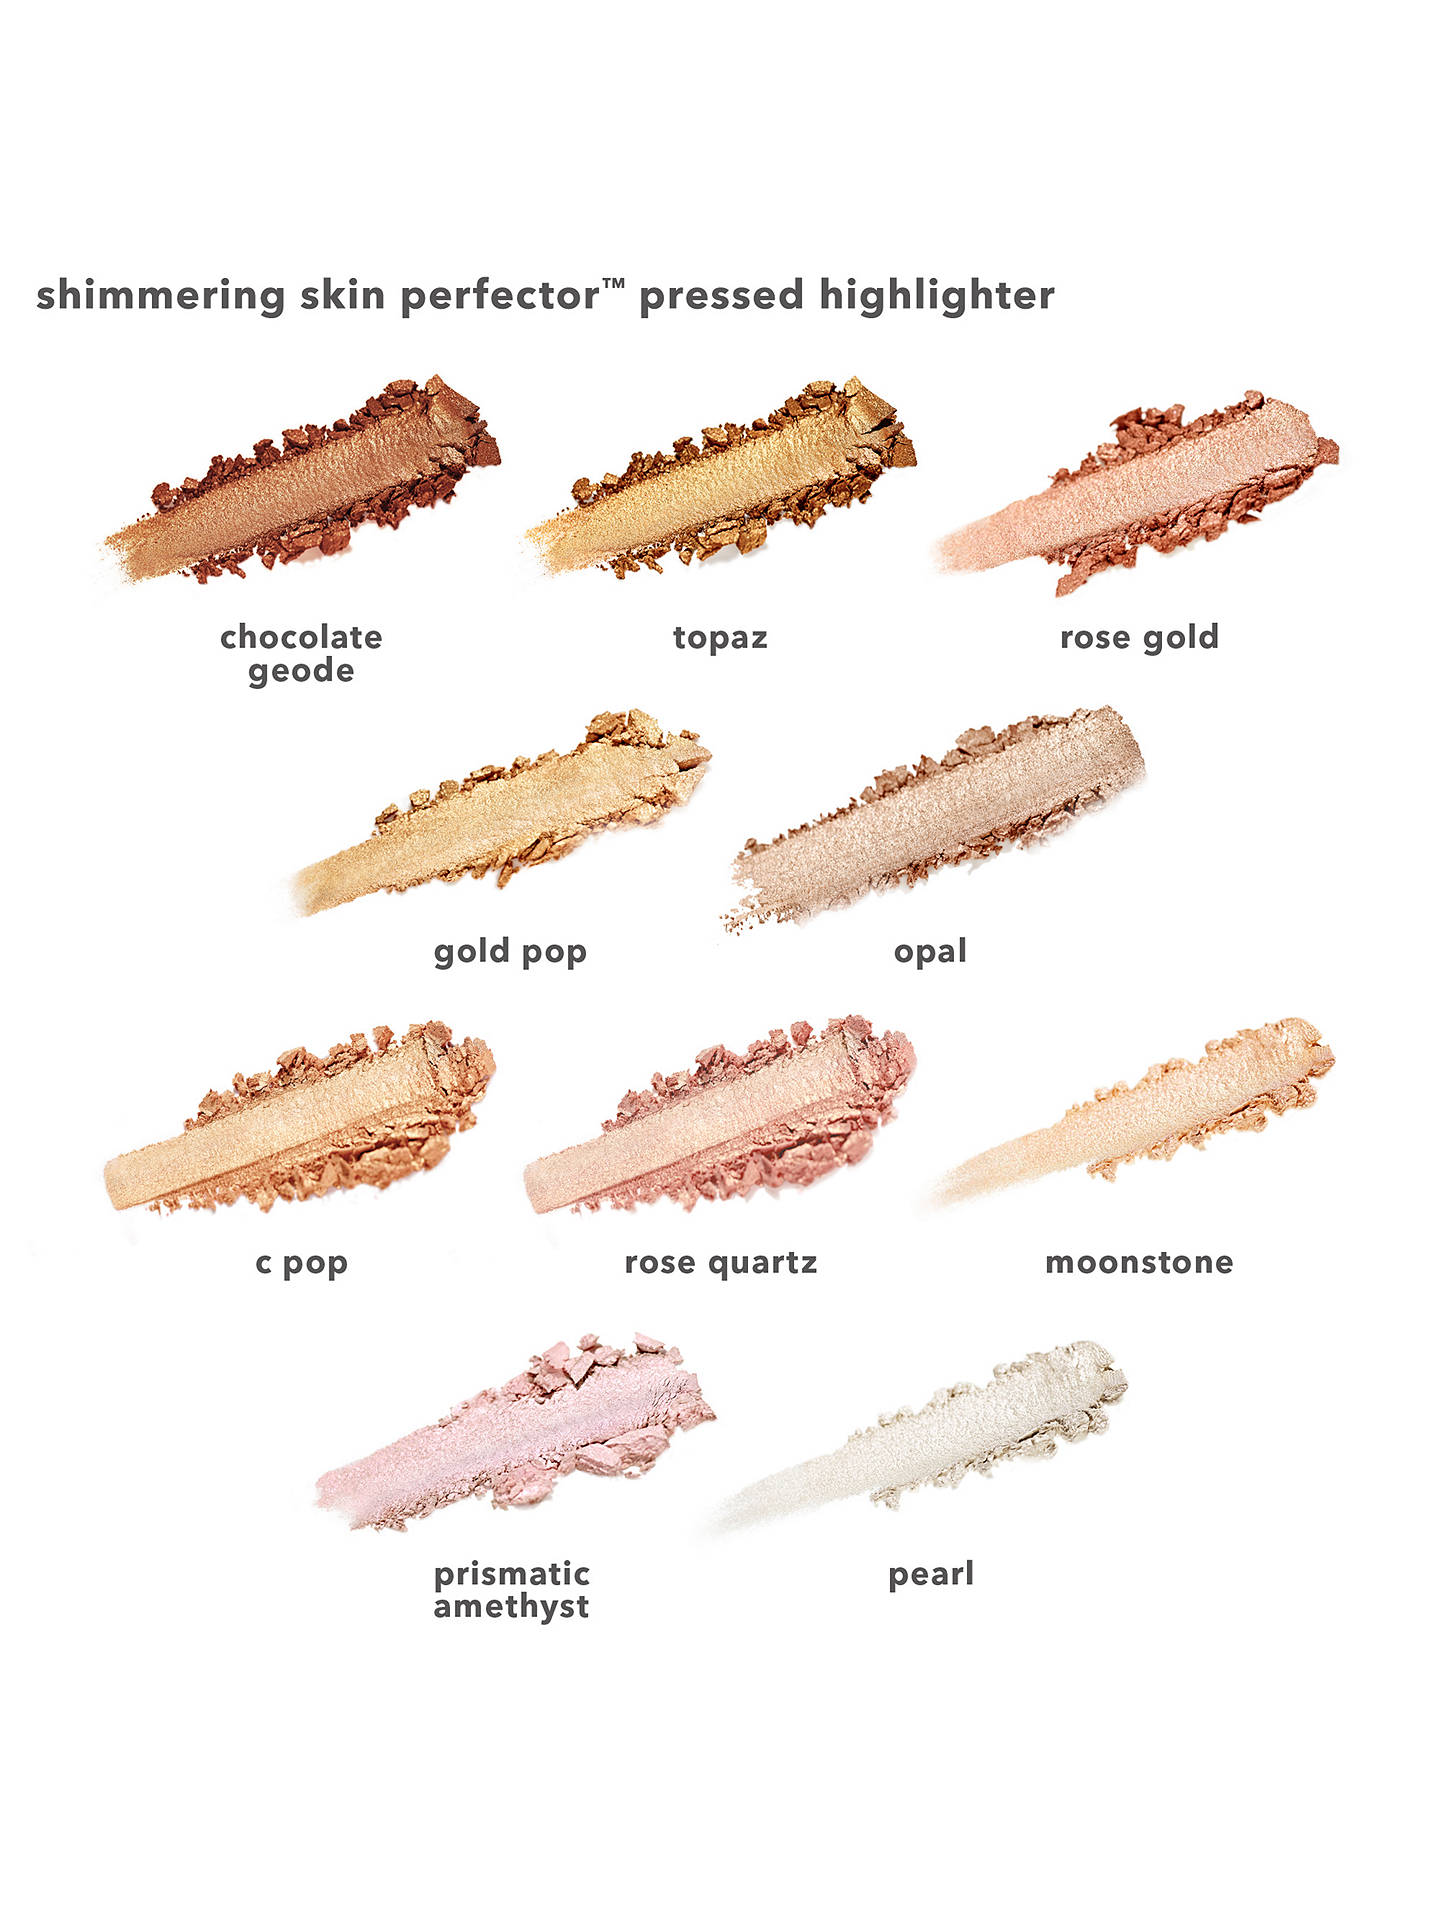 Buy BECCA Shimmering Skin Perfector™ Pressed Highlighter, Prismatic Amethyst Online at johnlewis.com